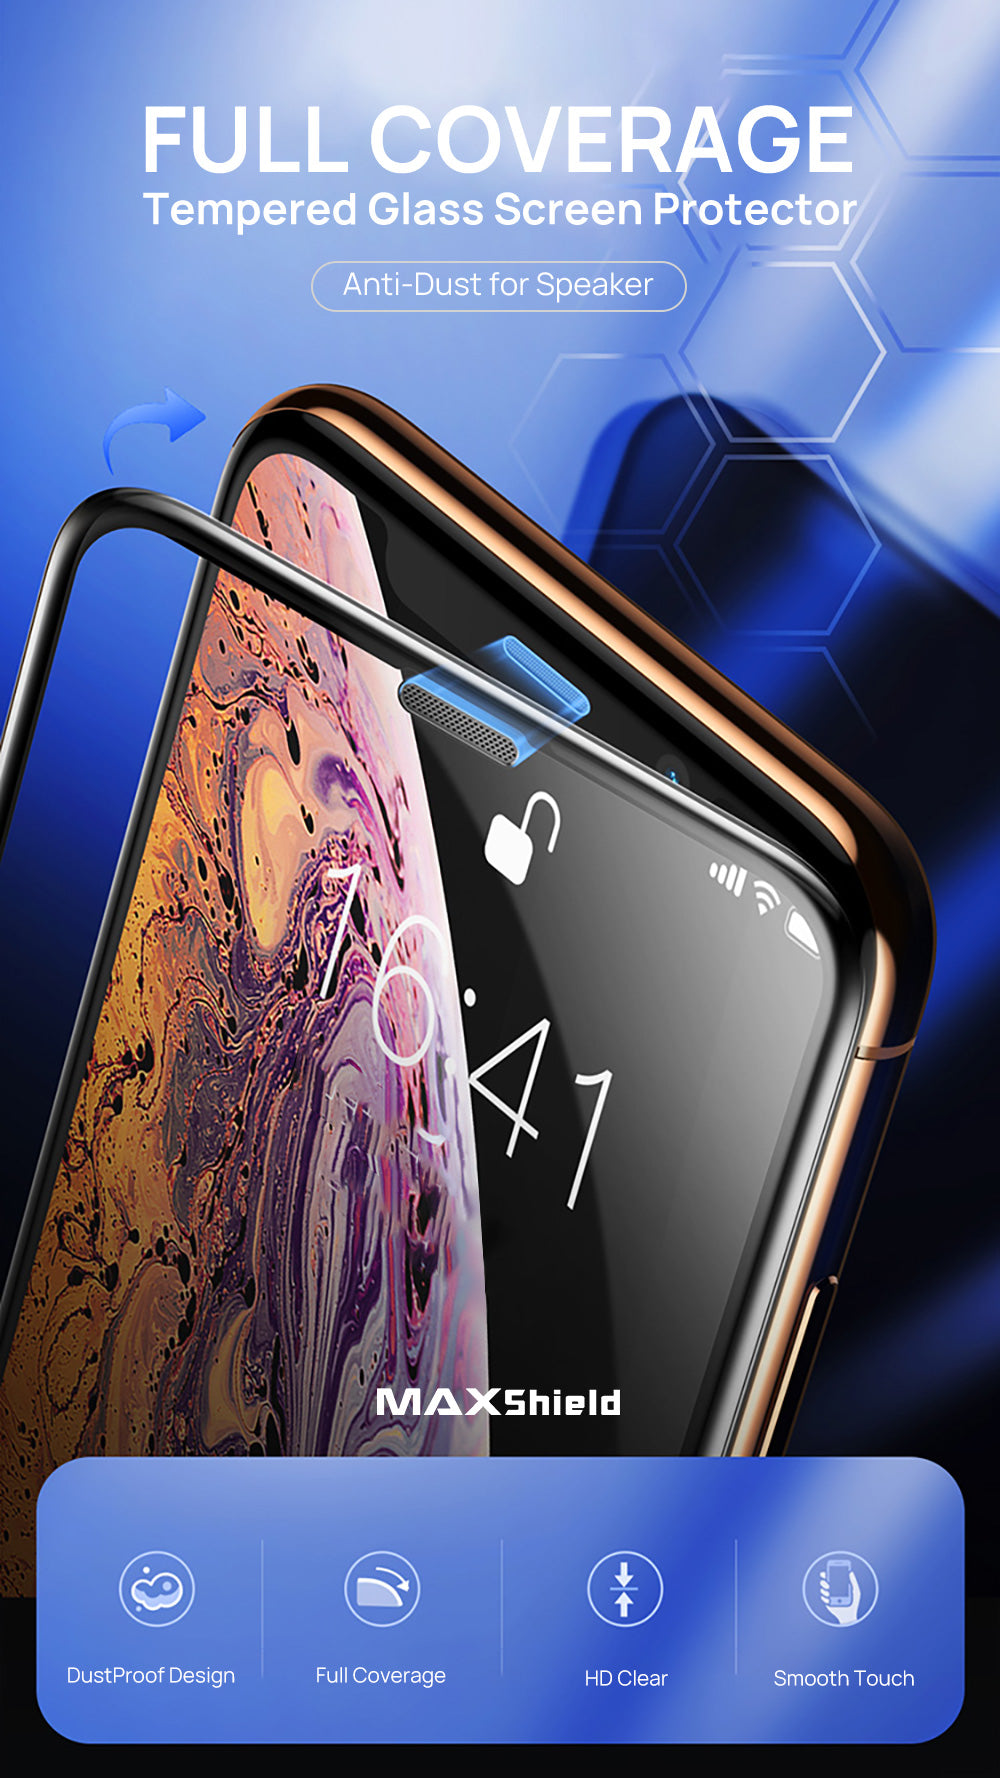 iPhone XR Full Coverage Tempered Glass Screen Protector